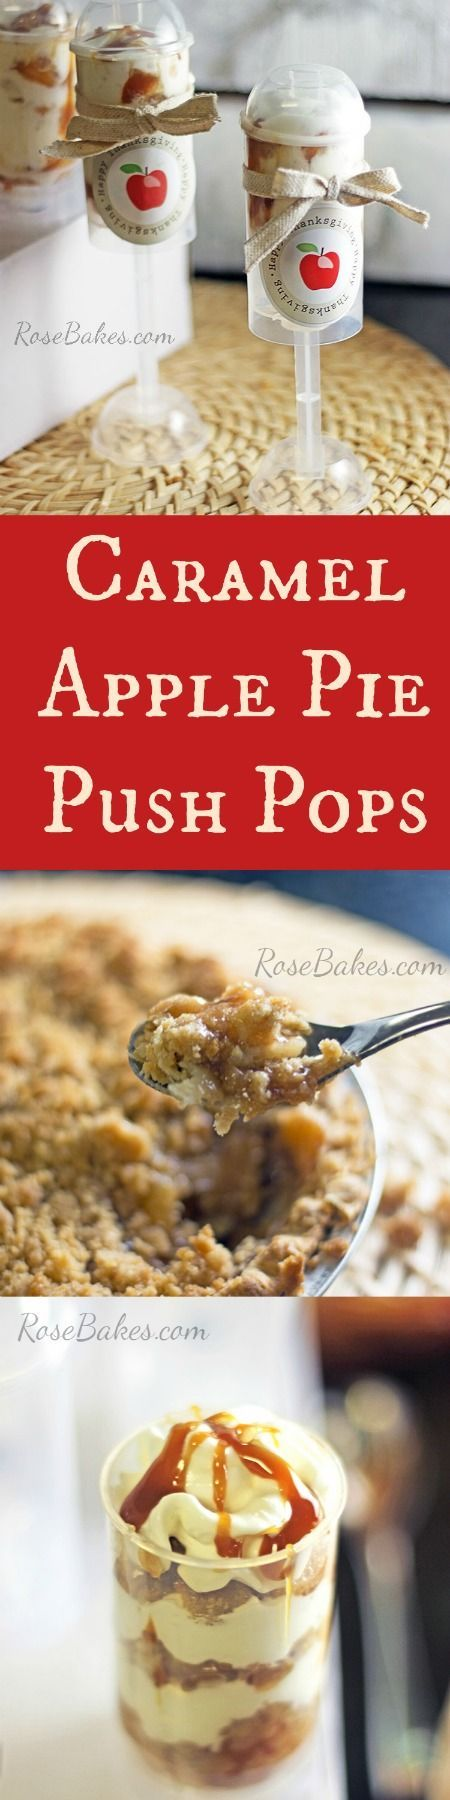 Caramel Apple Pie Push Pops RoseBakes.com.  Click over for the recipe & free printable!